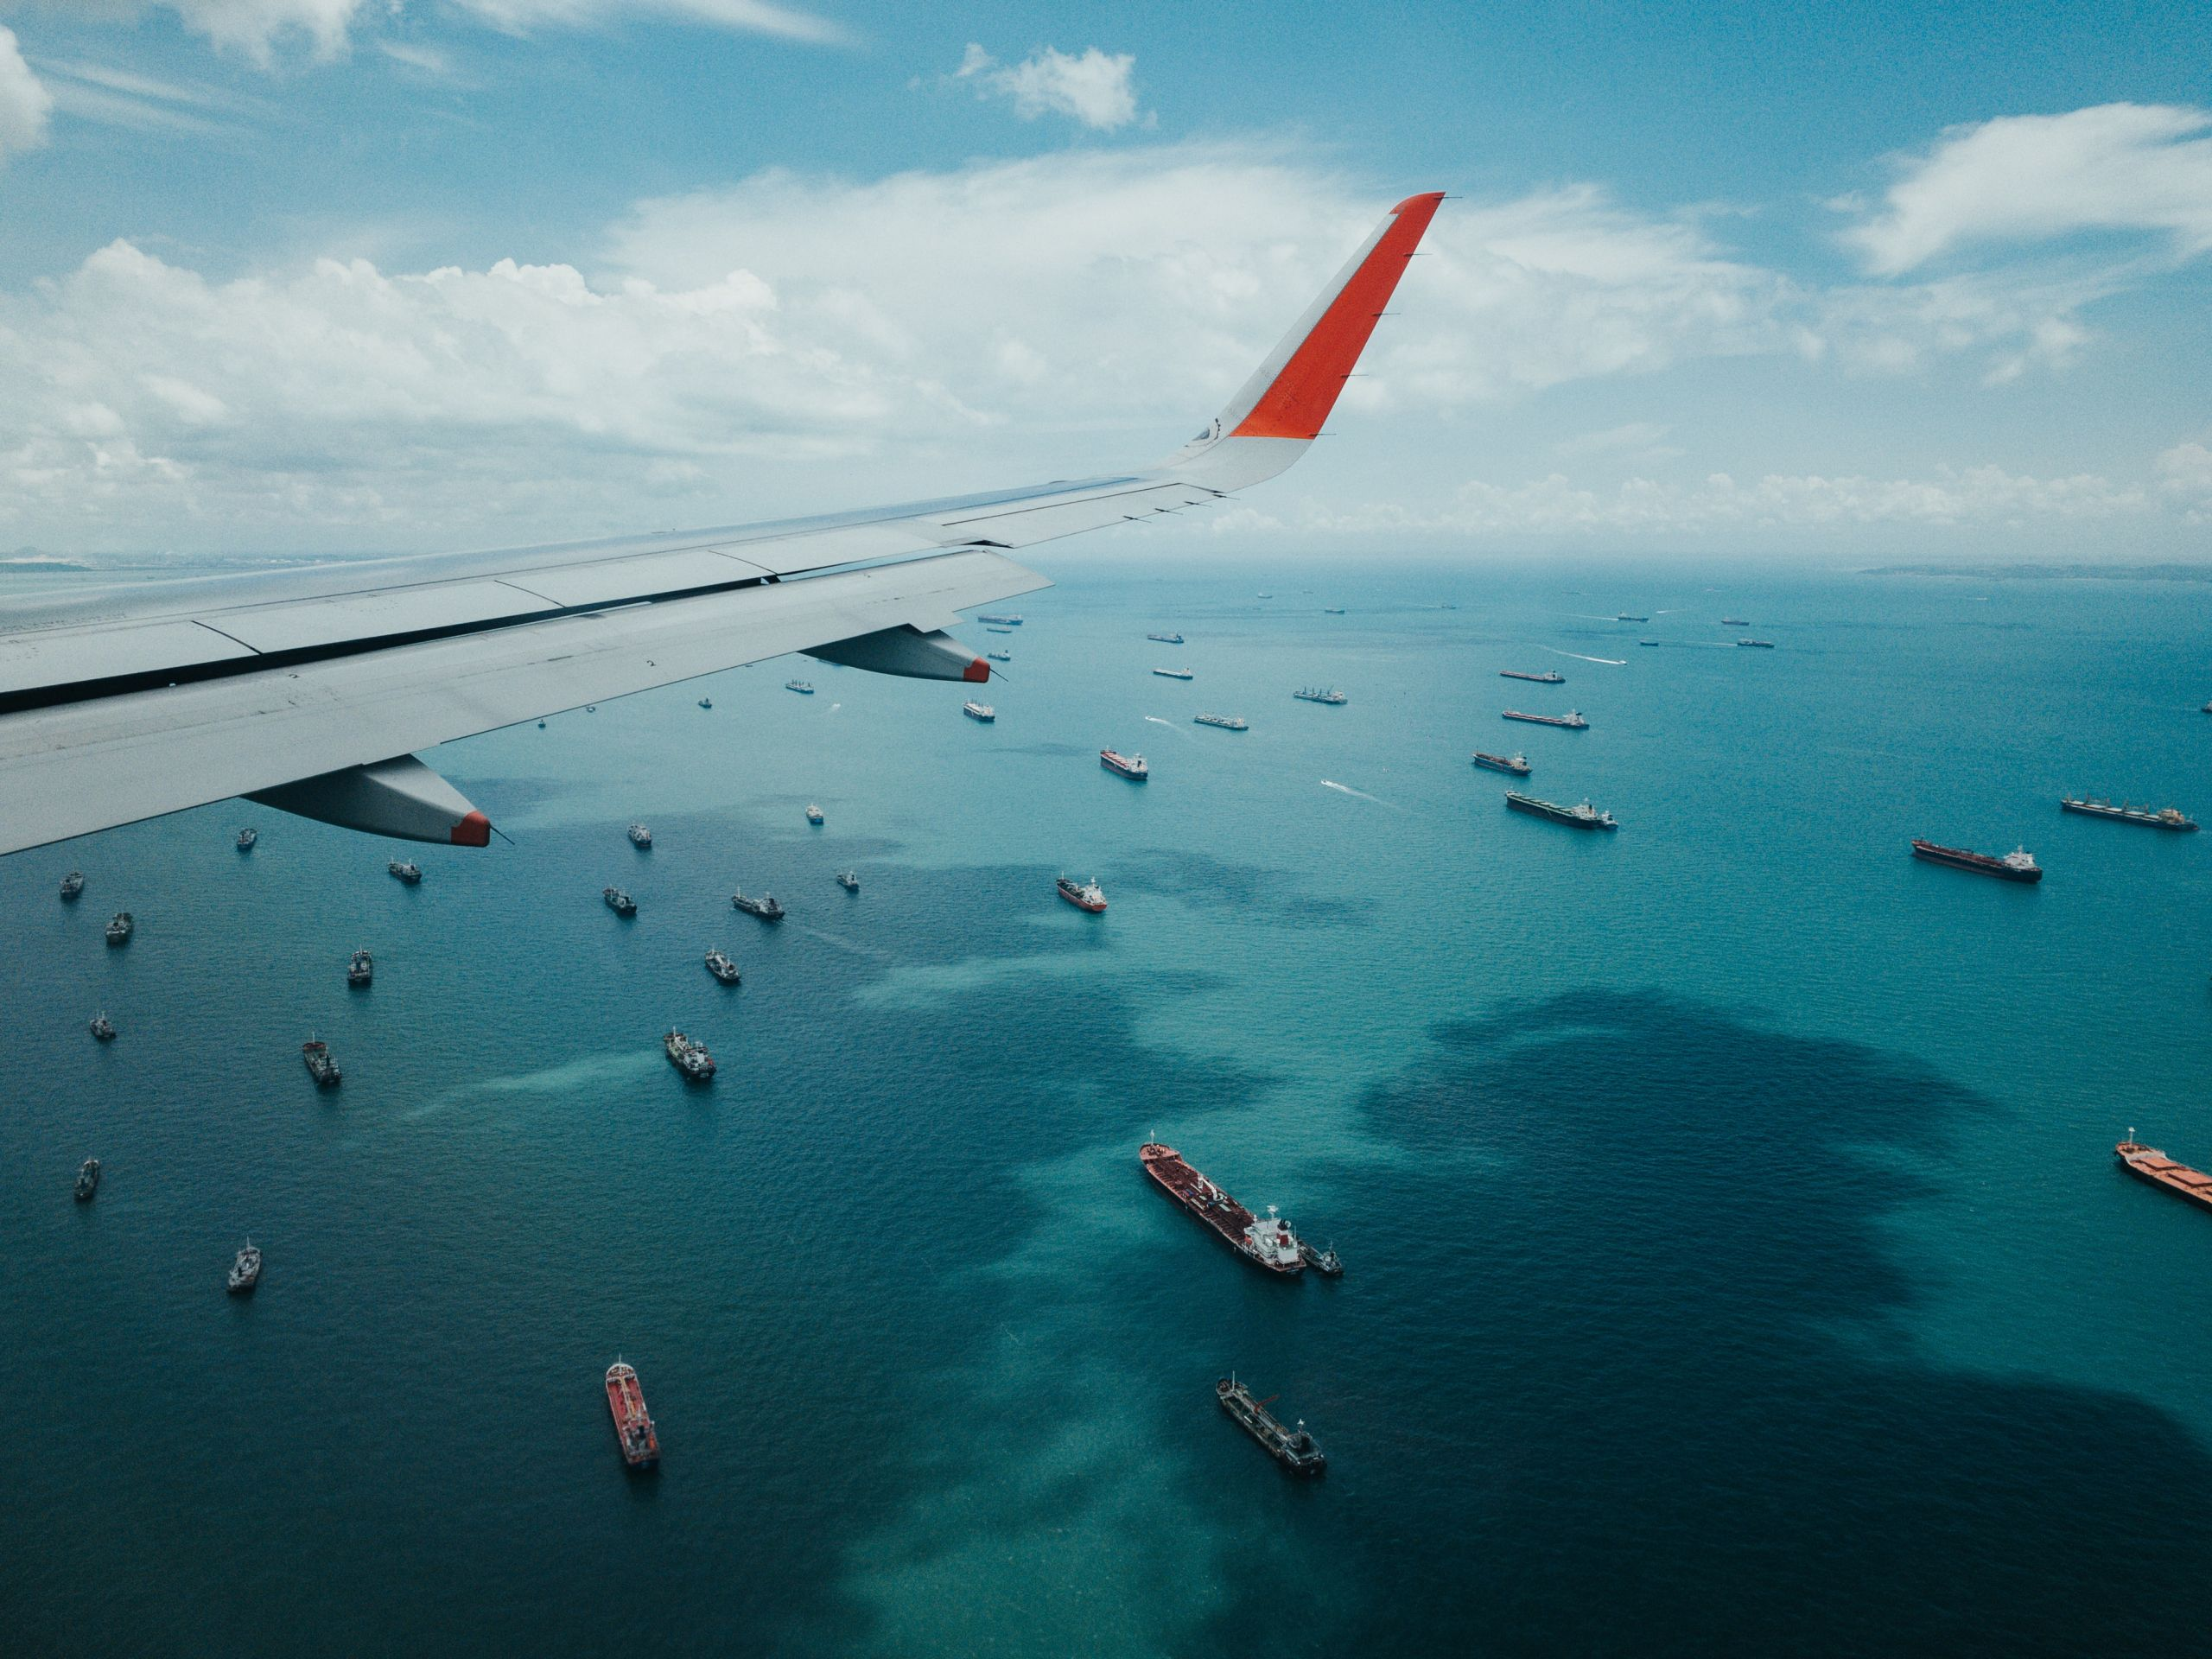 aeroplane flying above many shipping vessels